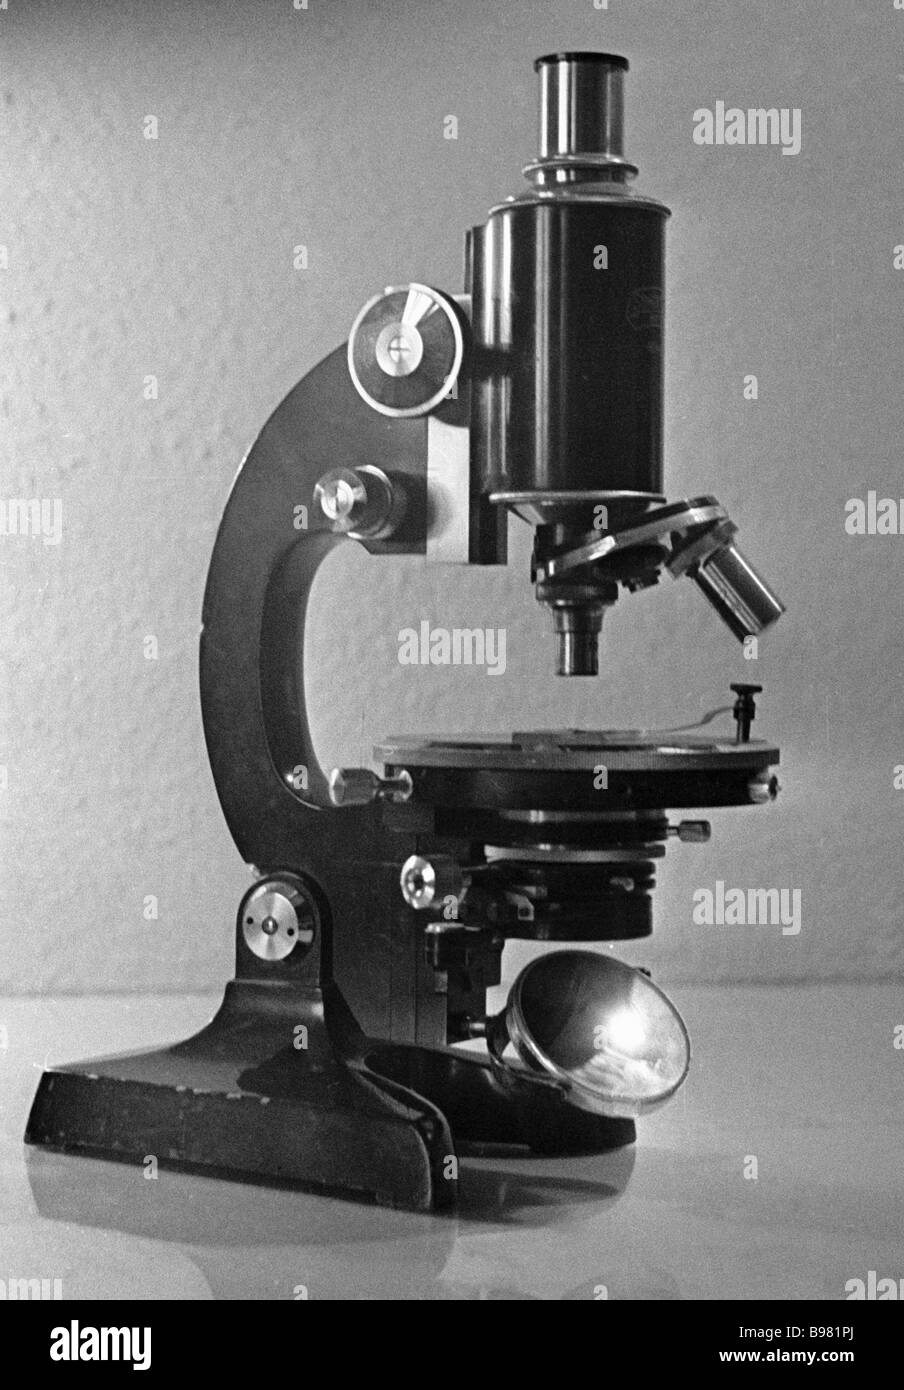 Steindorf microscope of the mid nineteenth century from collection of the Microscope Museum - Stock Image